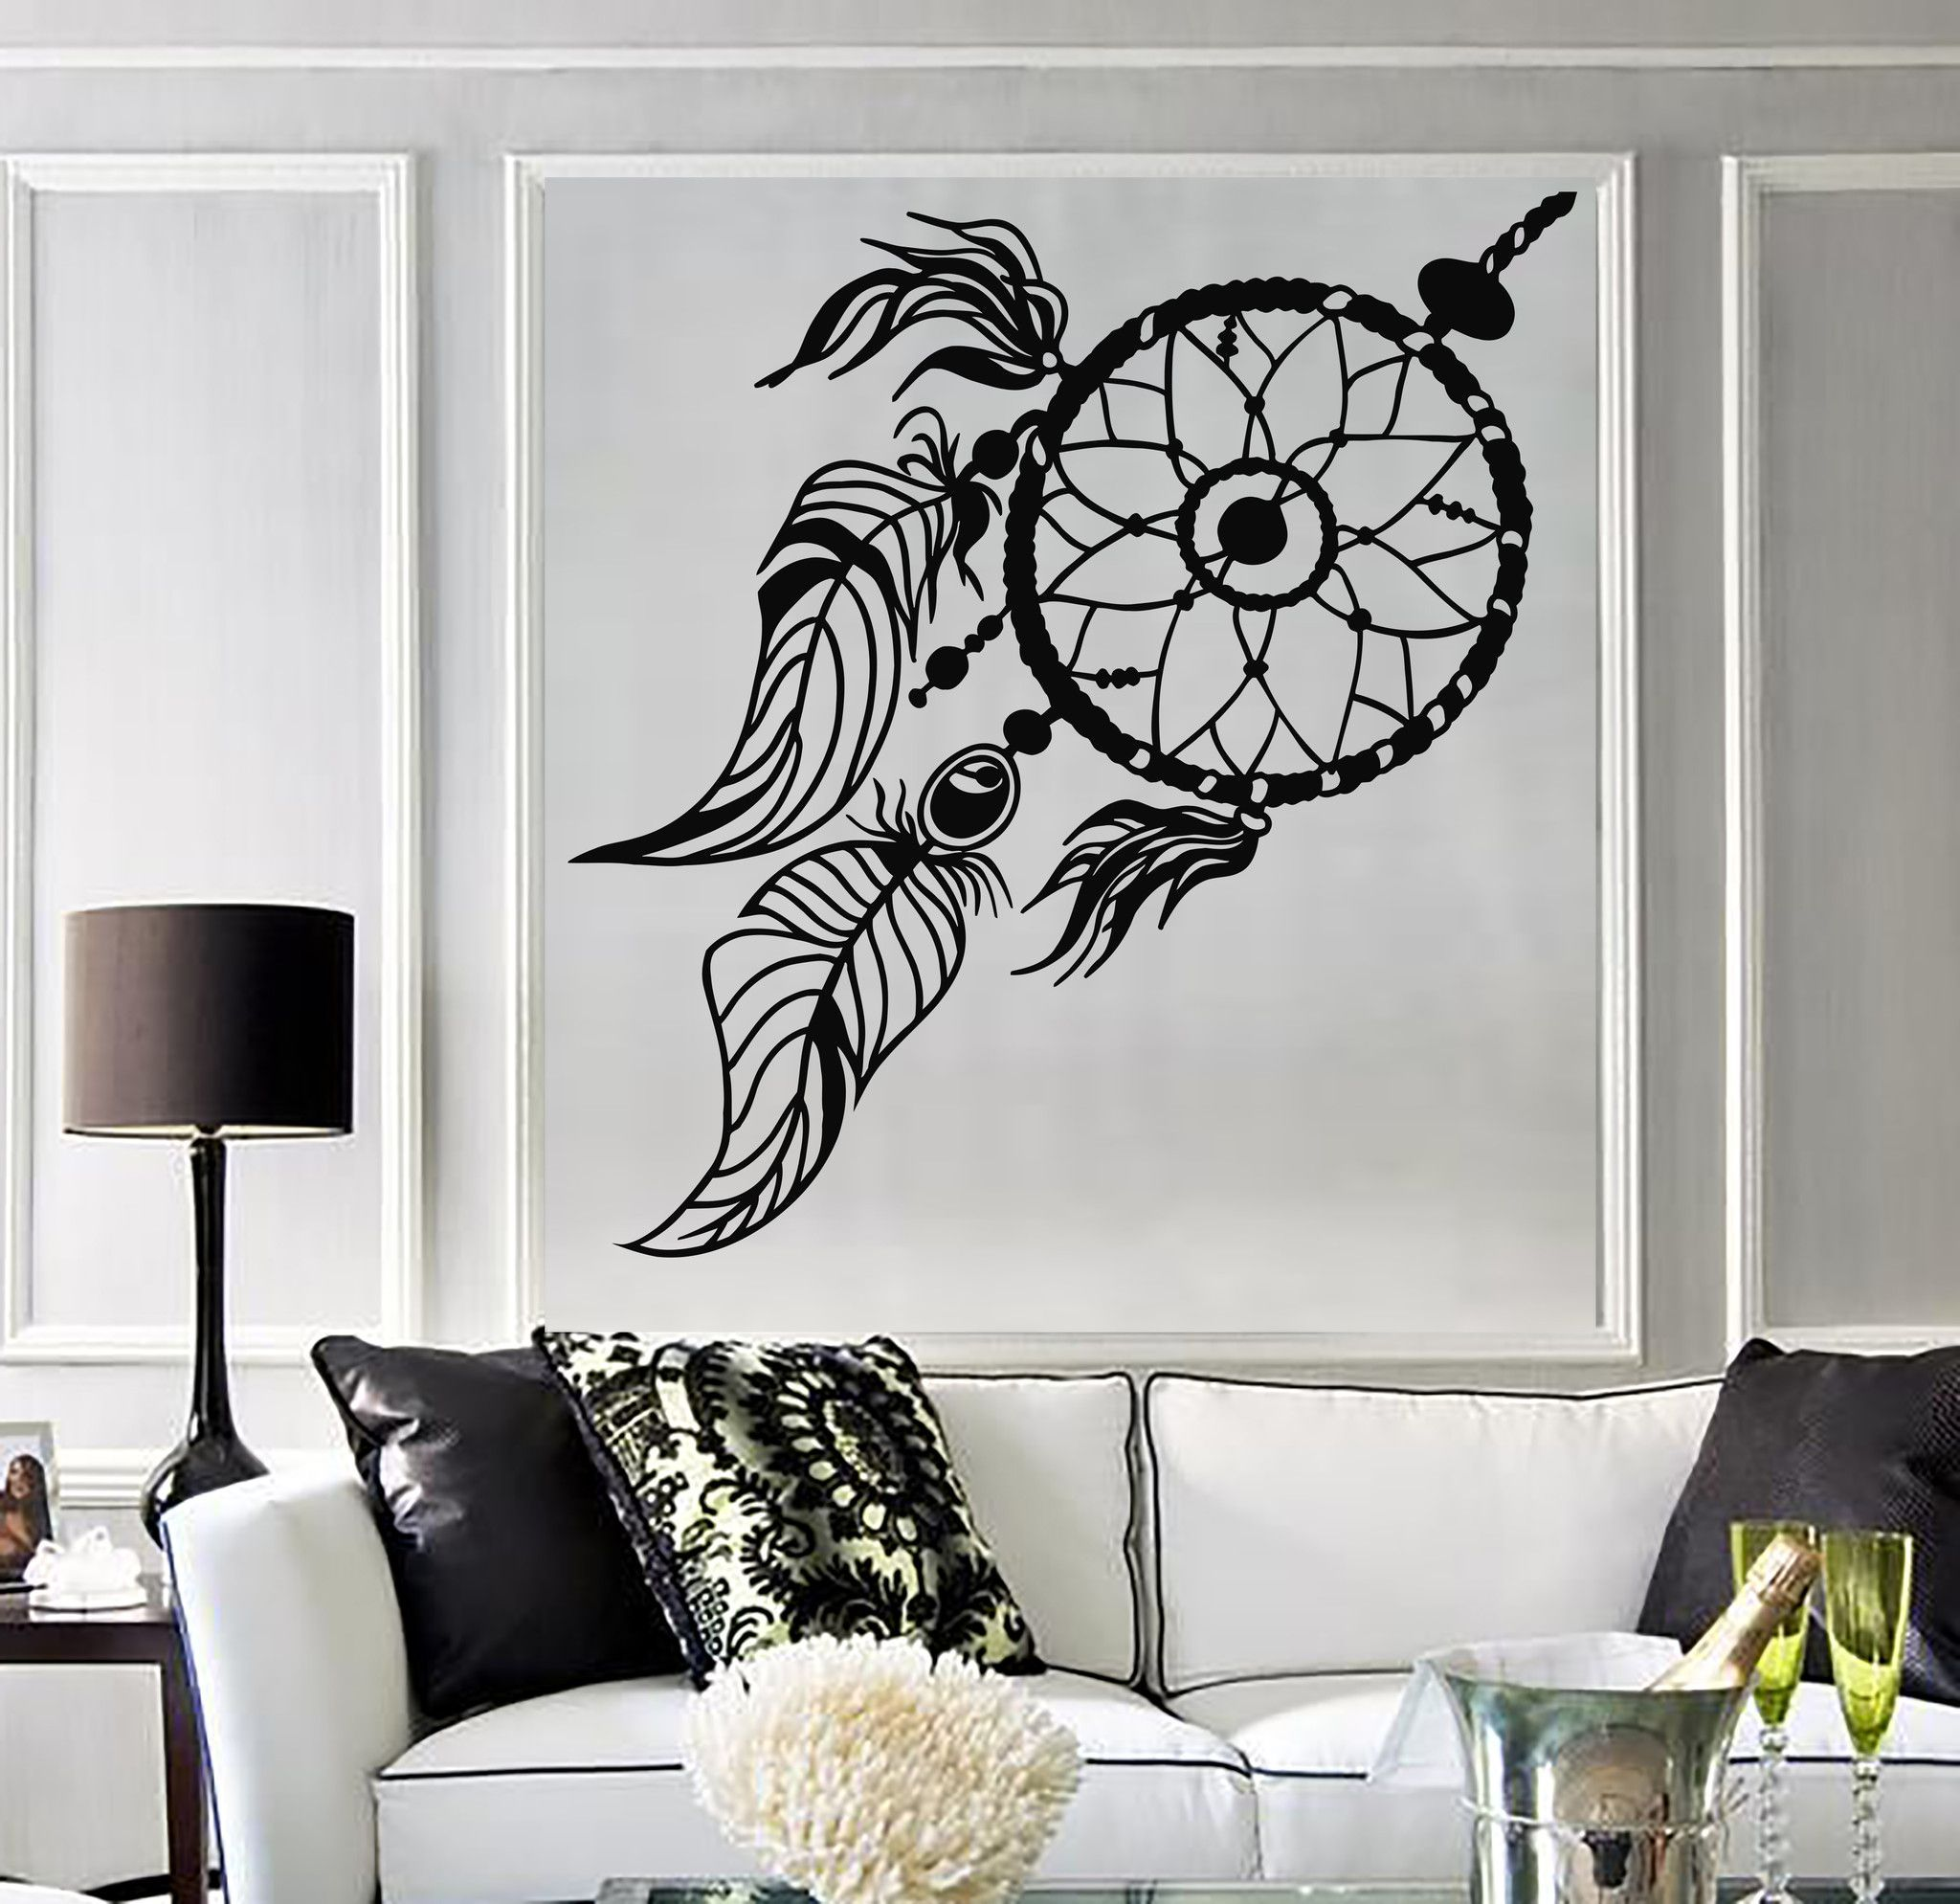 Wild birch forest with owls vinyl wall decal - Vinyl Wall Decal Dream Catcher Ethnic Style Dreamcatcher Stickers 649ig